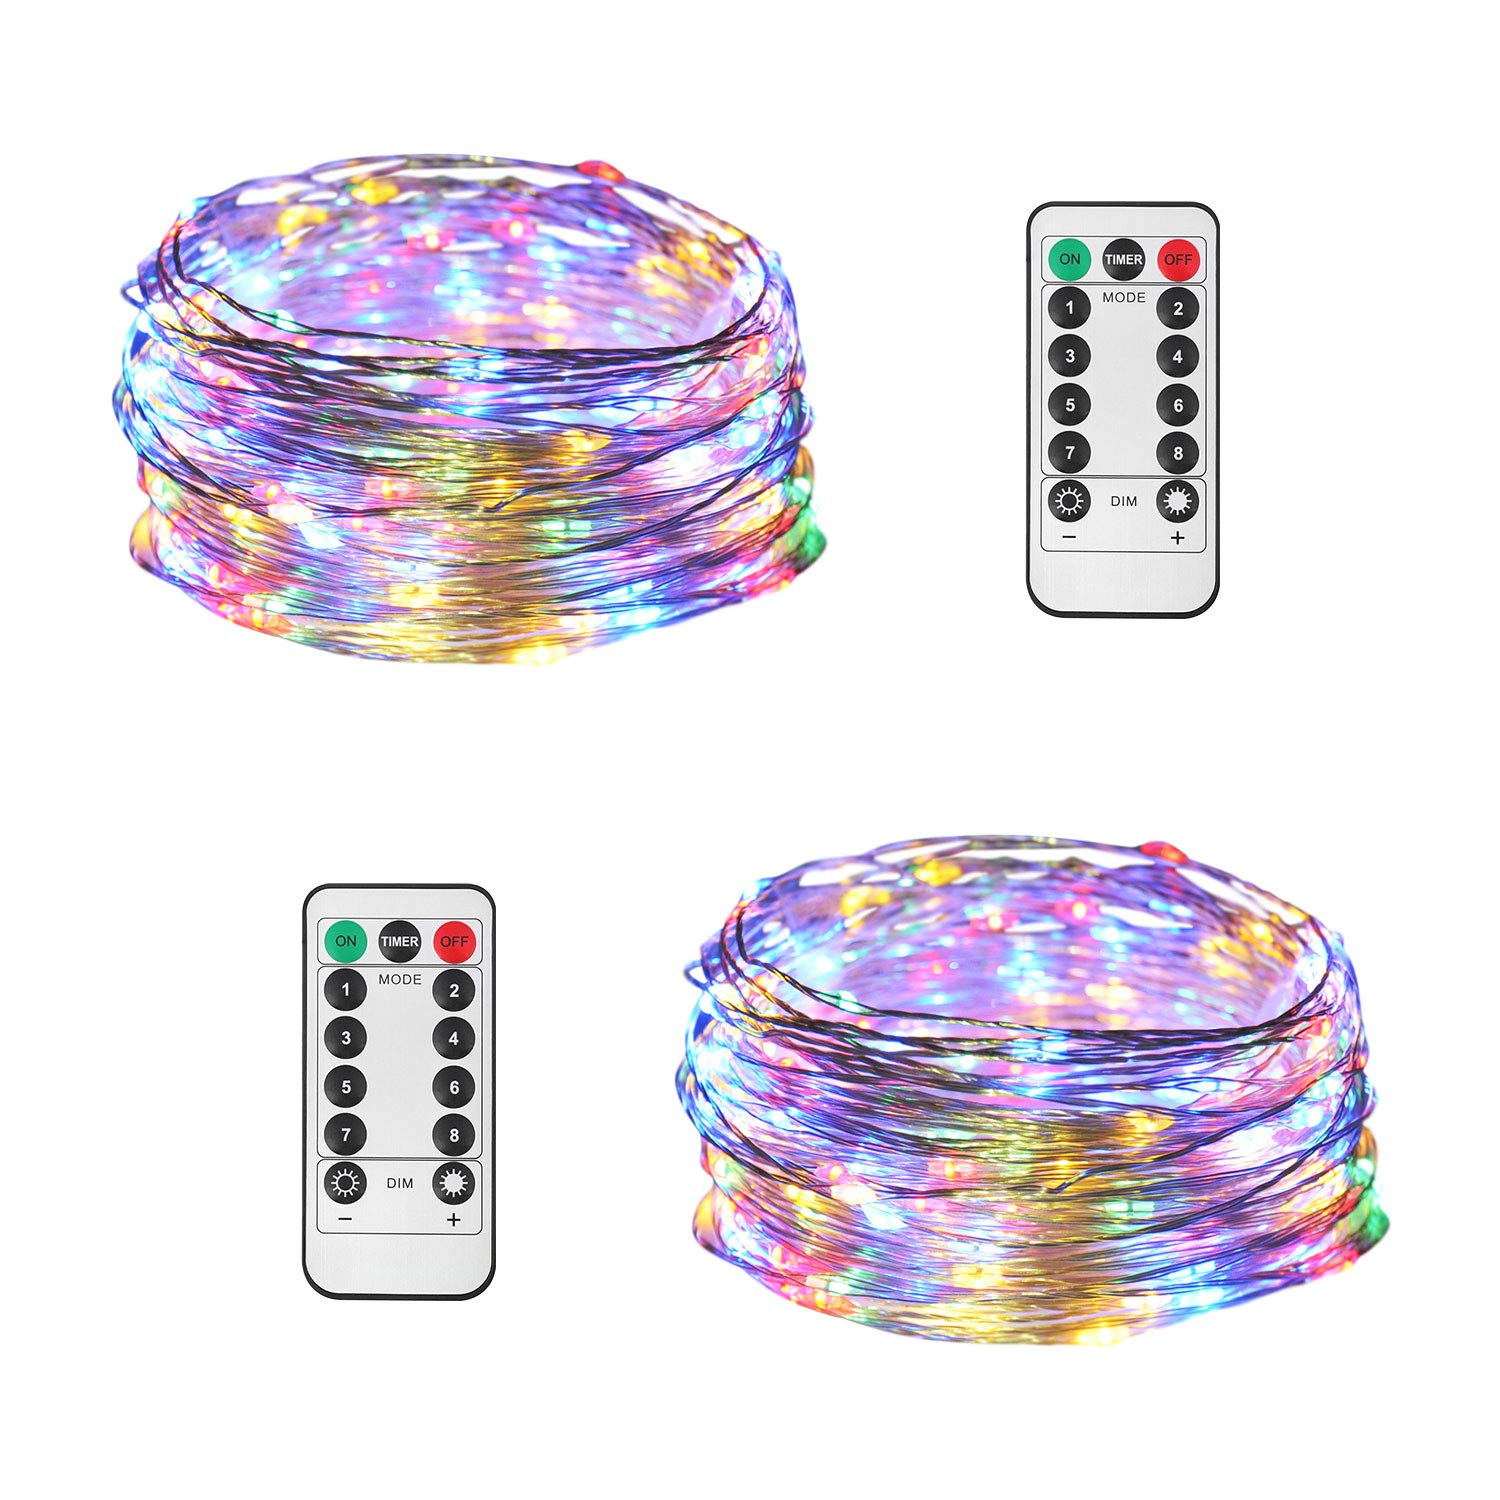 JMEXSUSS 2 Pack String Lights 8 Modes Timer Remote Control Fairy String Light 200 LED 65.6ft Battery Operated Waterproof Dimmable Copper Wire Lights for Christmas, Room, Wedding (200LED Multi-Color)